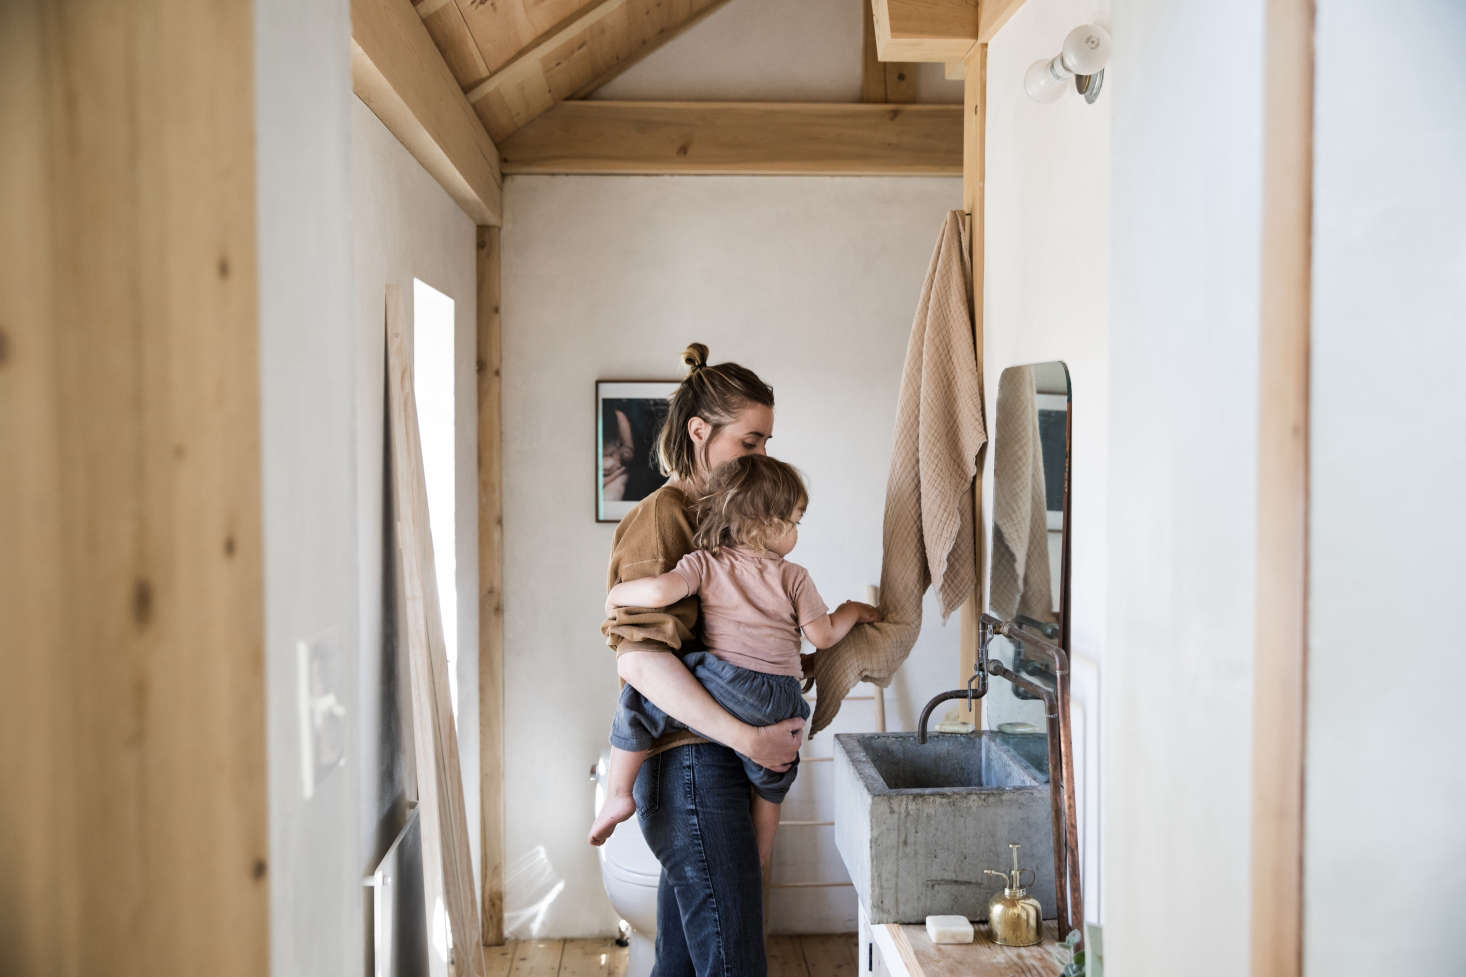 O'Rourke and son Diogo in the bathroom, with an exposed-pipe faucet and concrete sink.